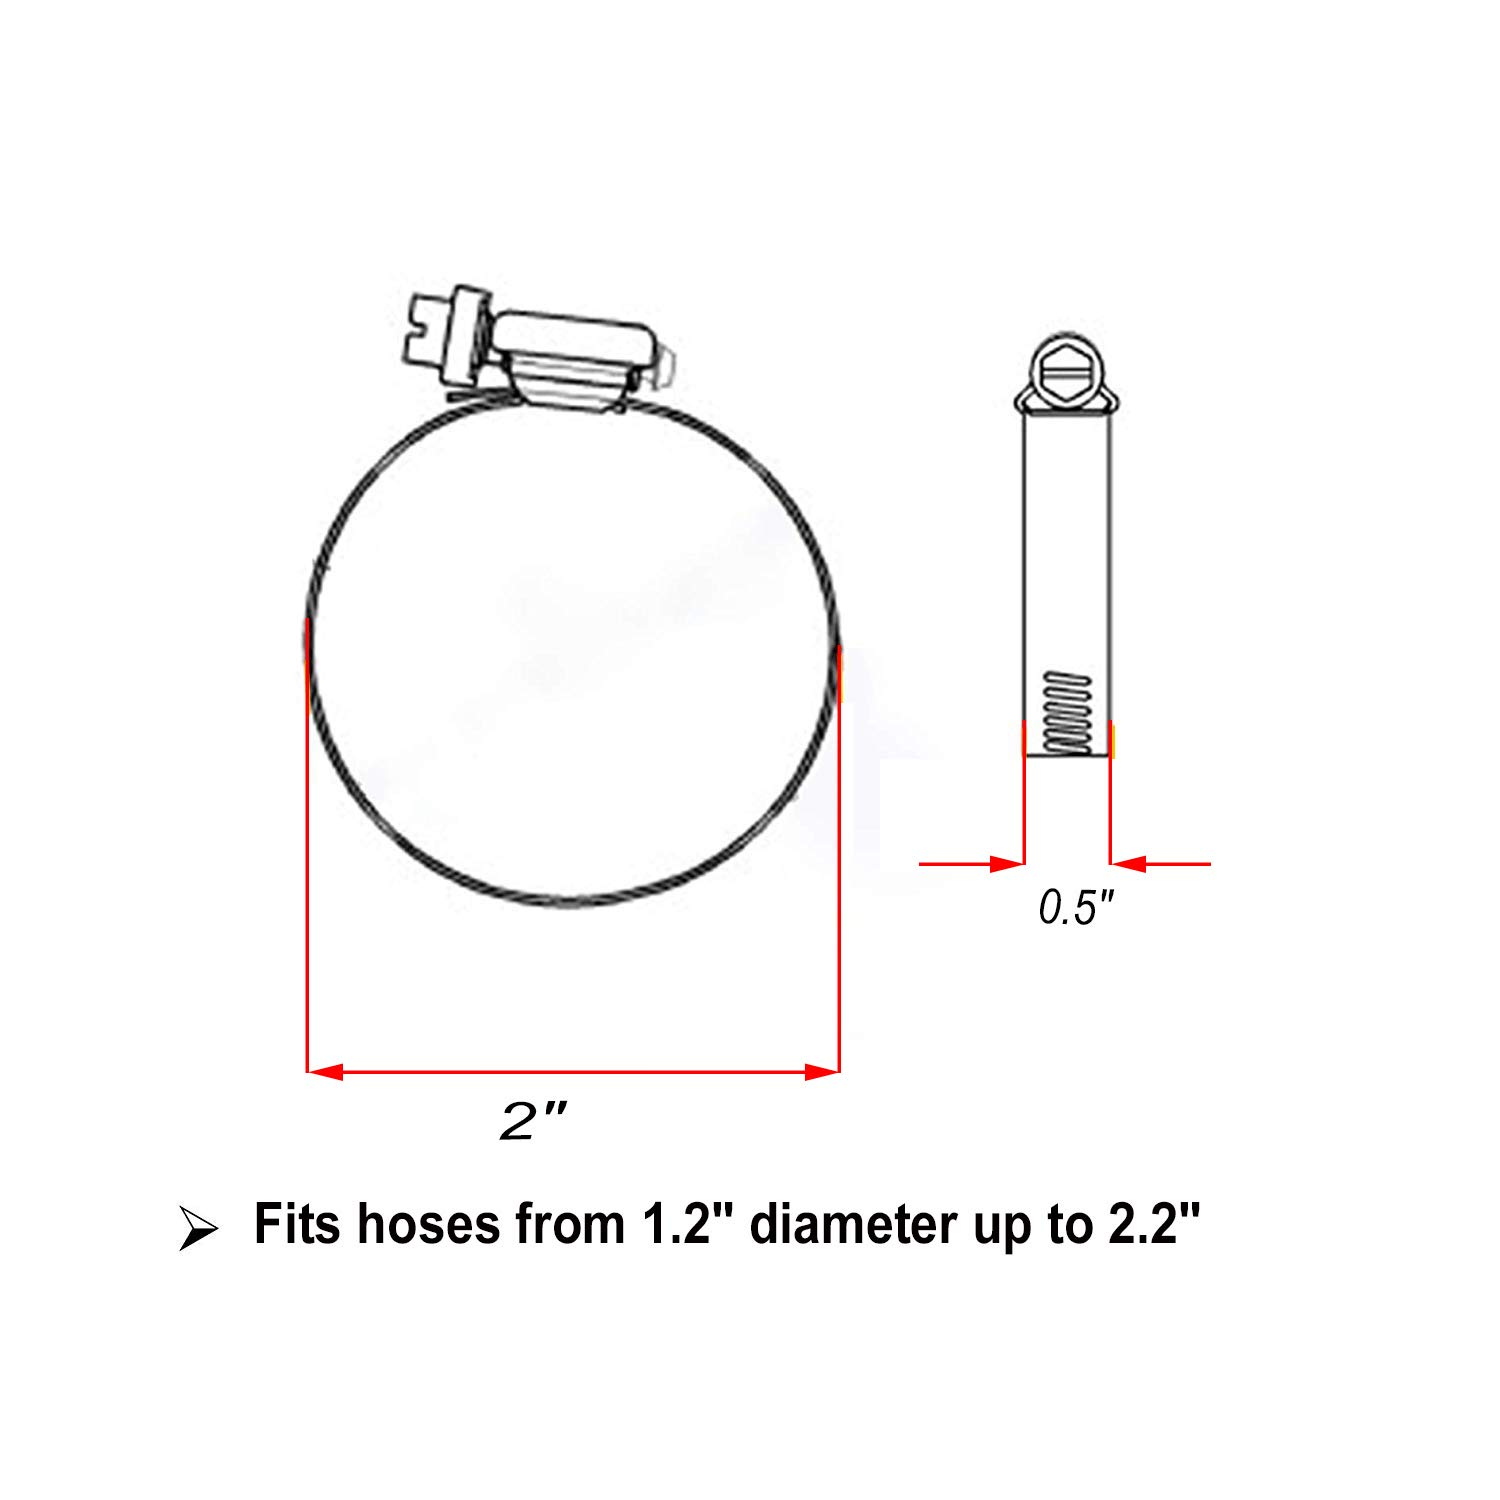 Hose Clamp,5Pcs SS304 Stainless Steel Adjustable Size Range Worm Gear Hose Clamp Suitable for a Variety of Applications for Home 5-inch Auto and Industrial Use